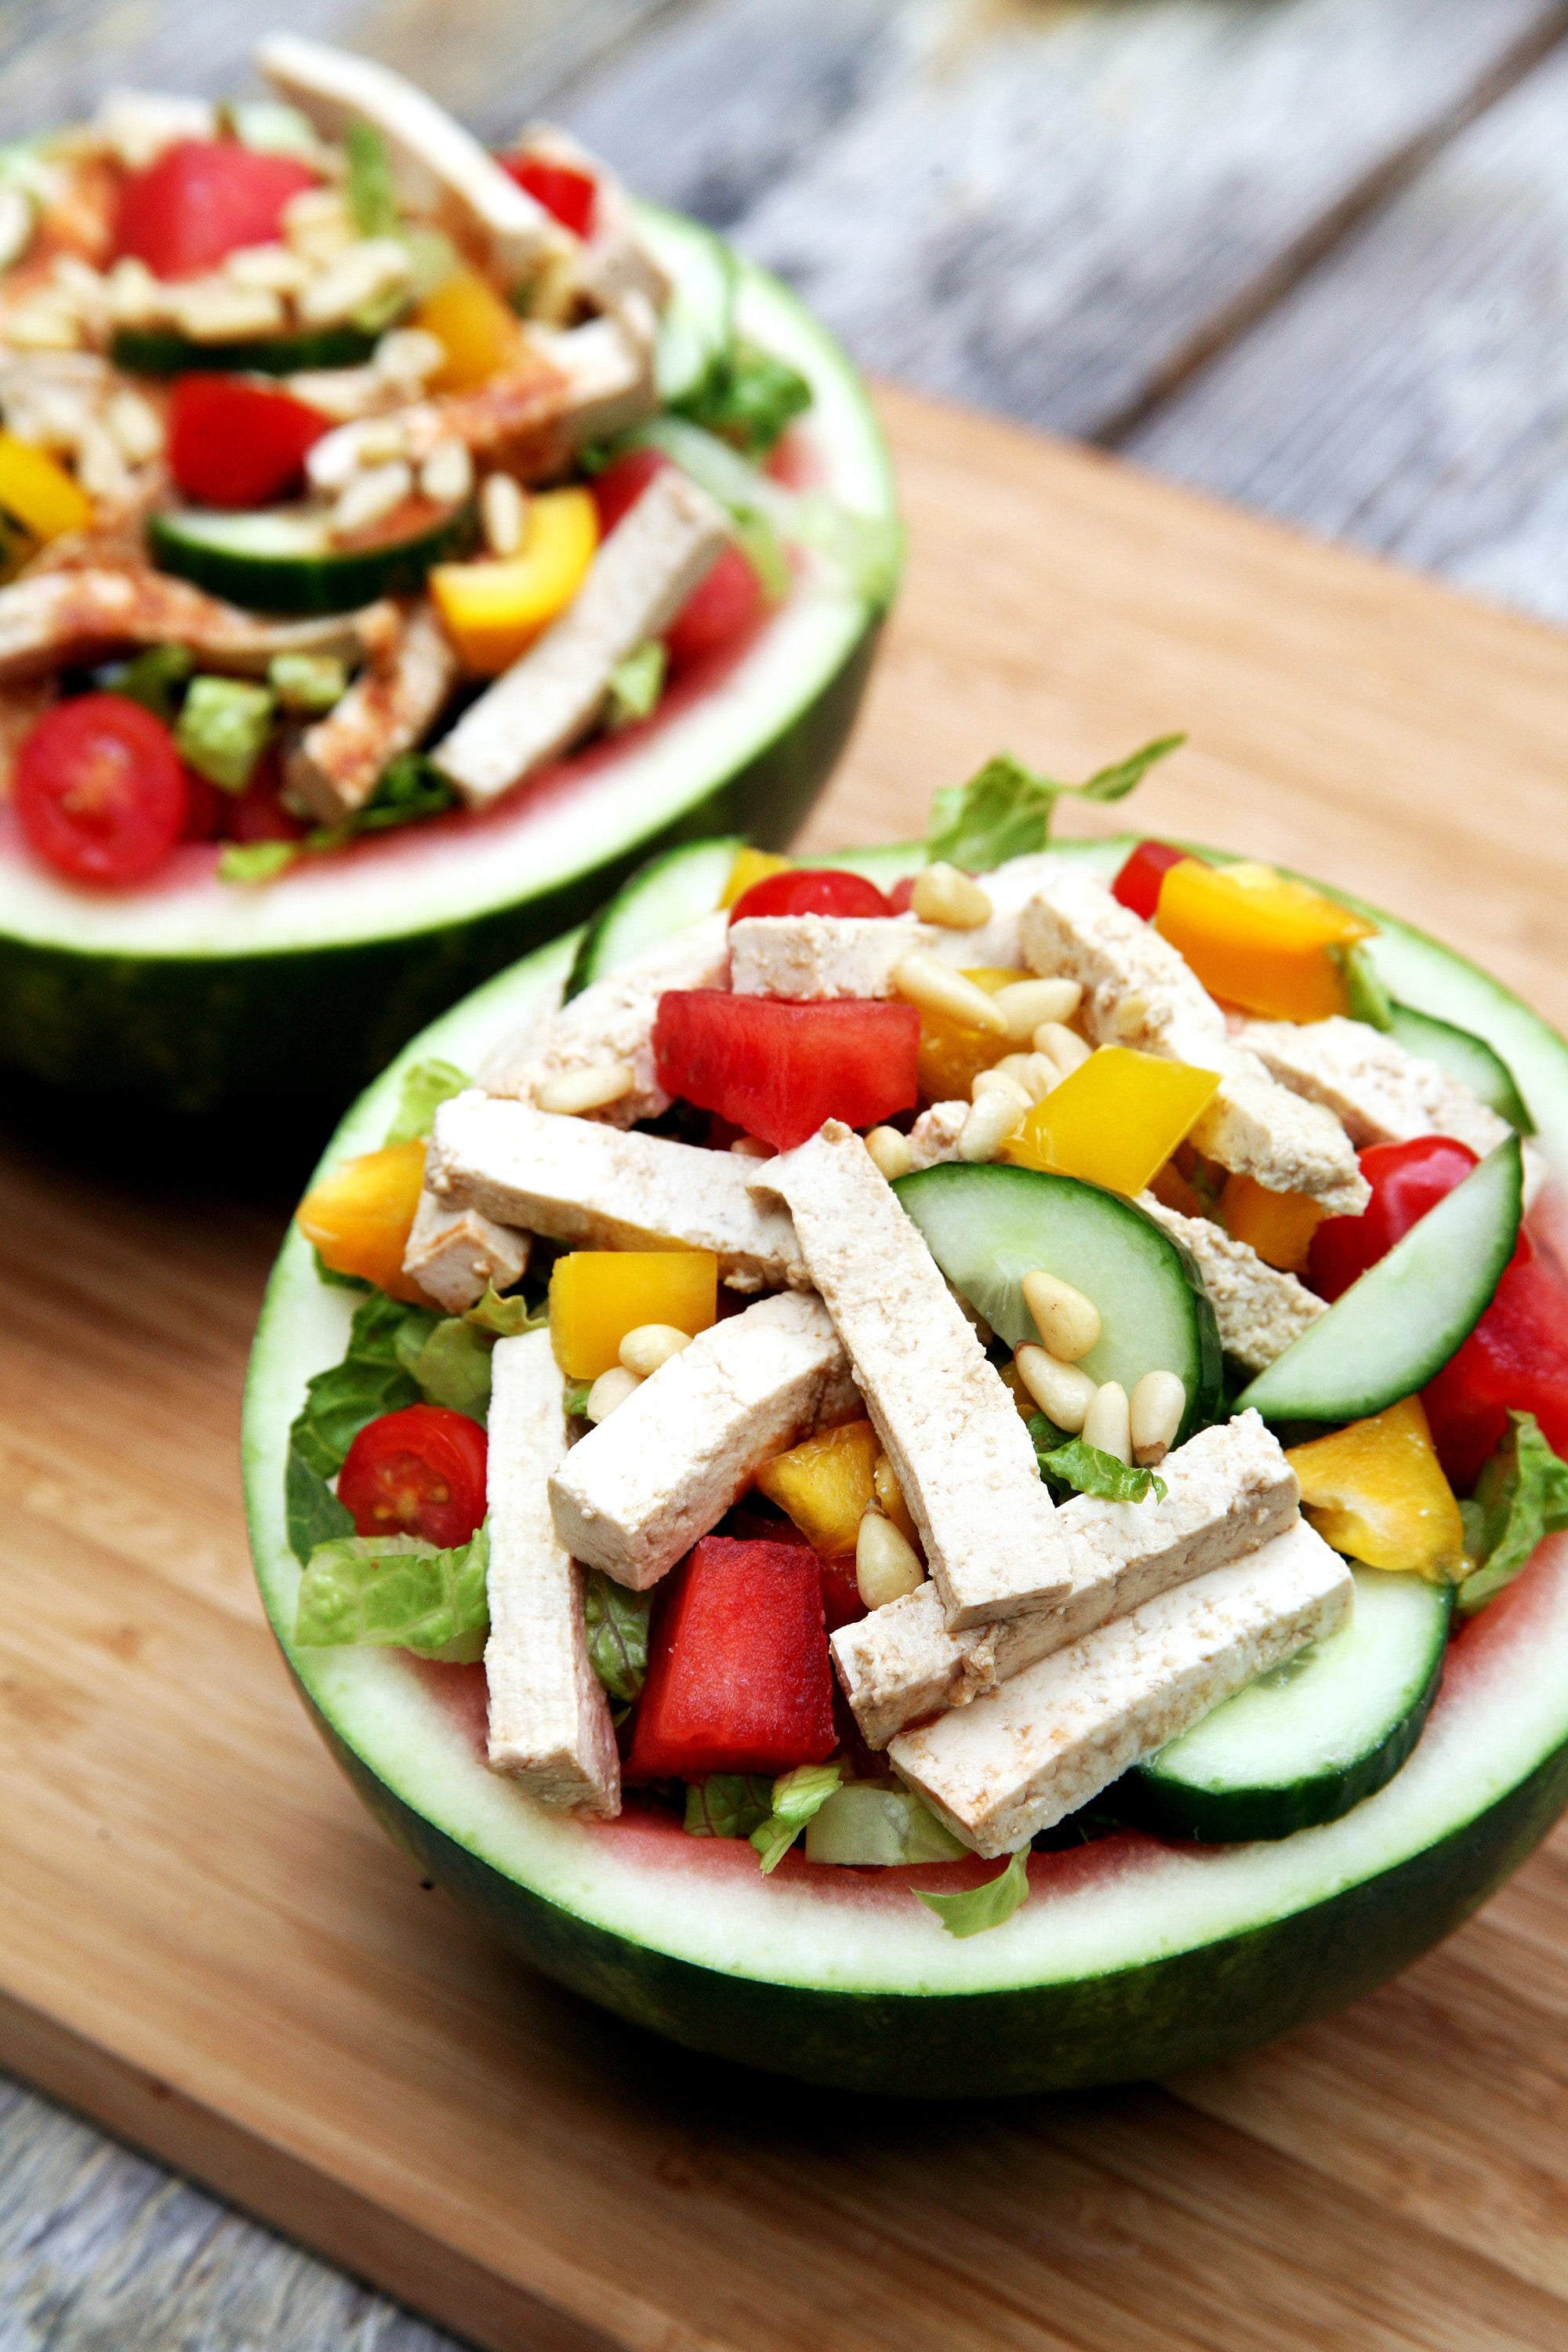 Ginger Tofu Watermelon Bowl Salad | No Cook Recipes With Refreshing Summer Flavors | Homemade Recipes